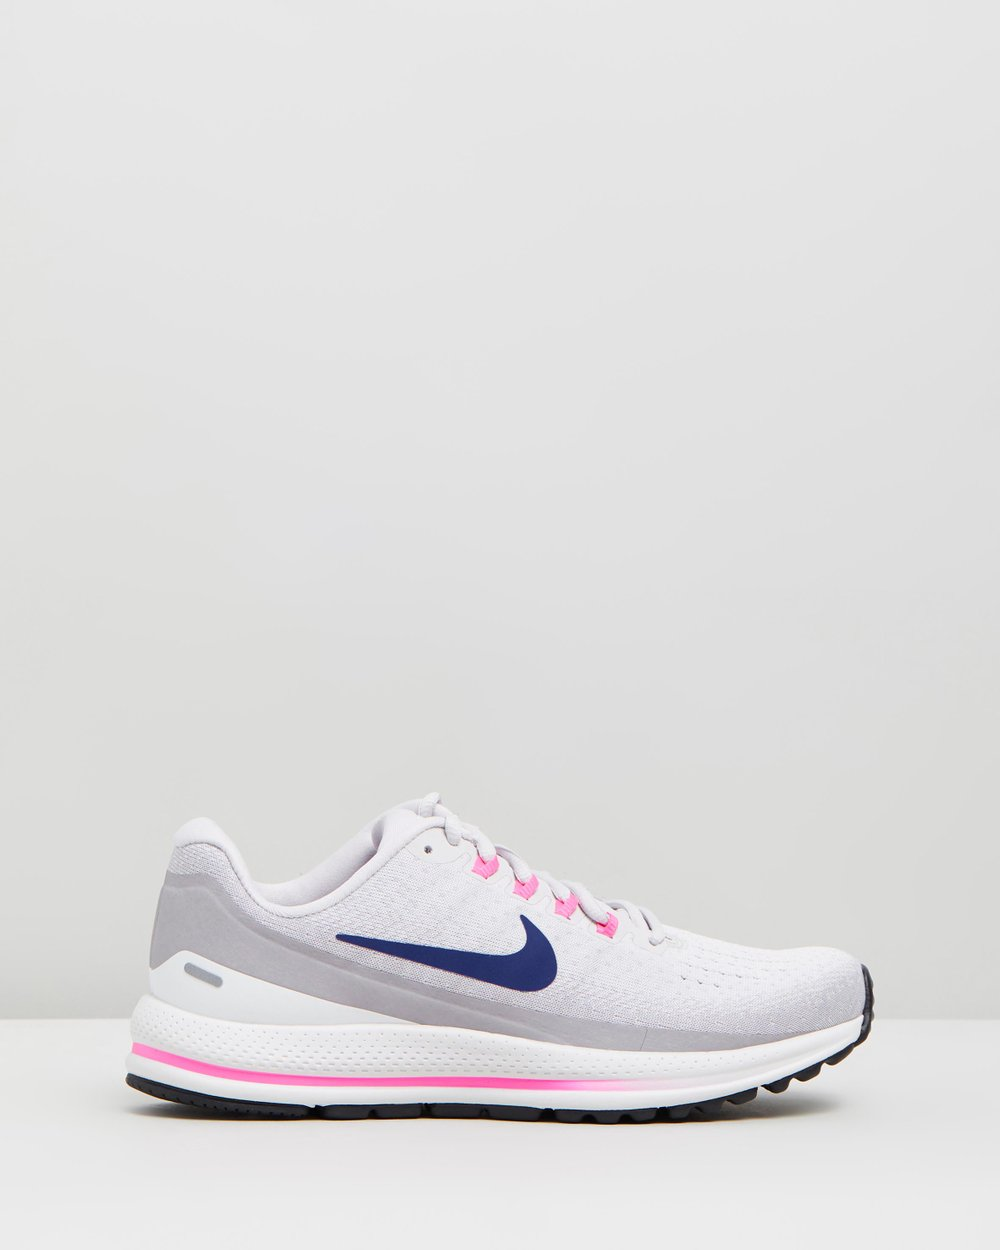 383762ab537f Air Zoom Vomero 13 Running Shoes - Women s by Nike Online